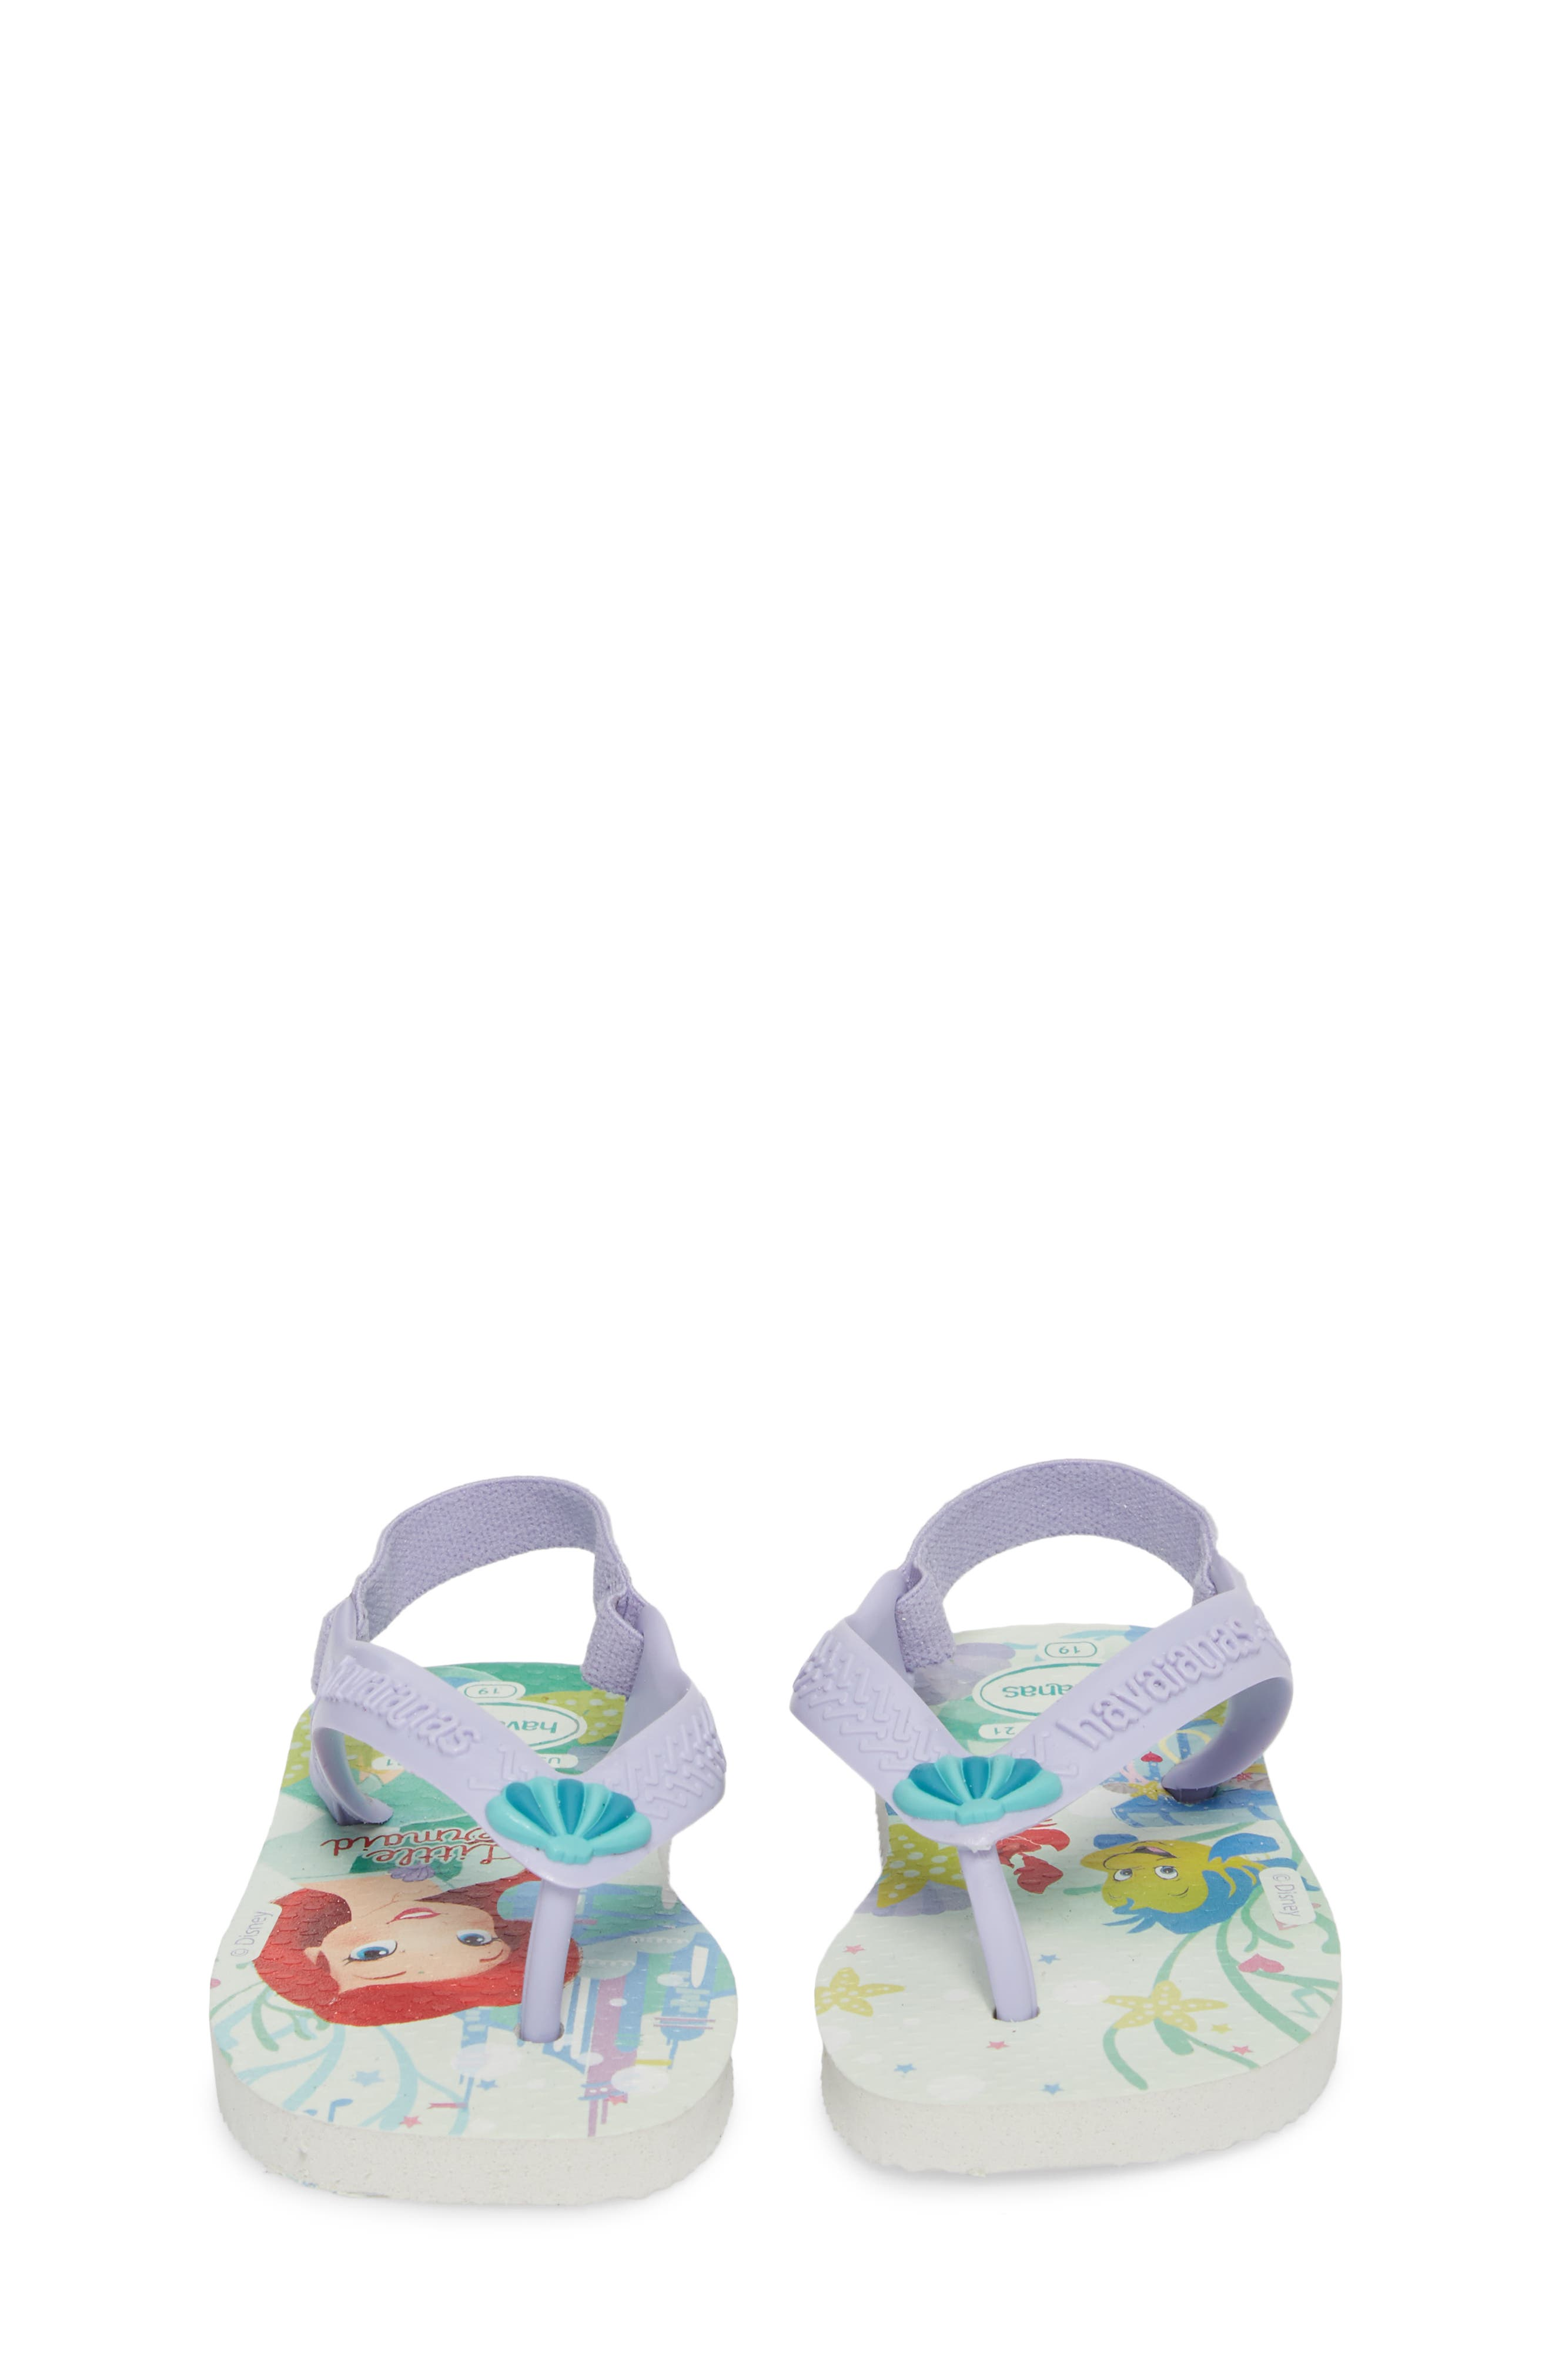 Baby Disney<sup>®</sup> Princess Flip Flop,                             Alternate thumbnail 5, color,                             100